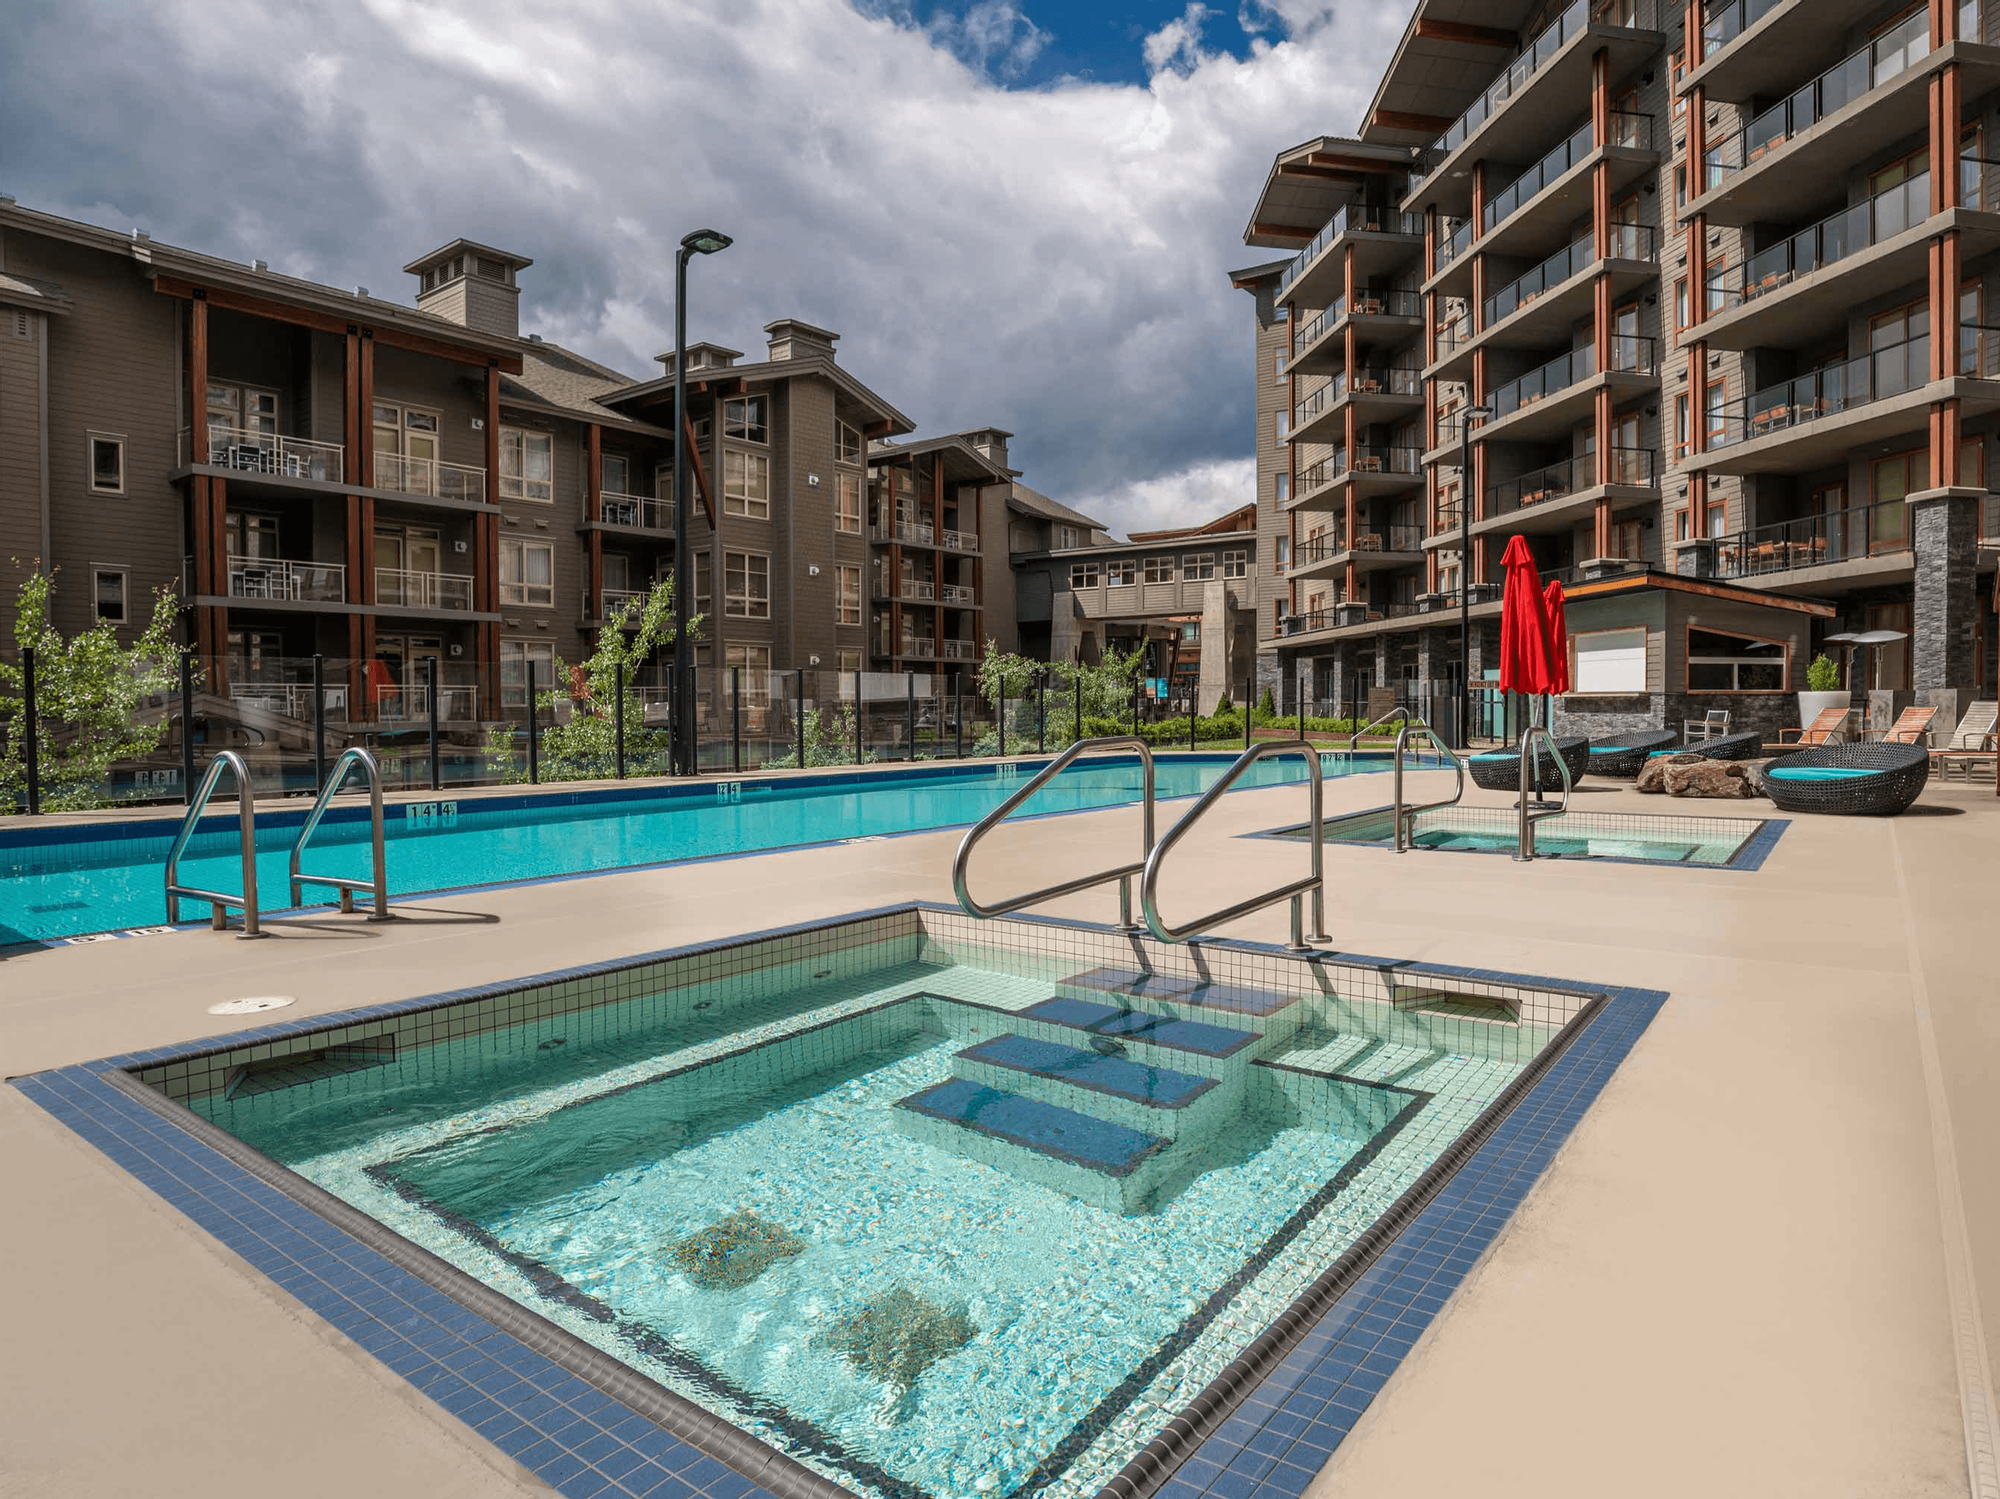 Outdoor All-Season Pool The Sutton Place Hotels